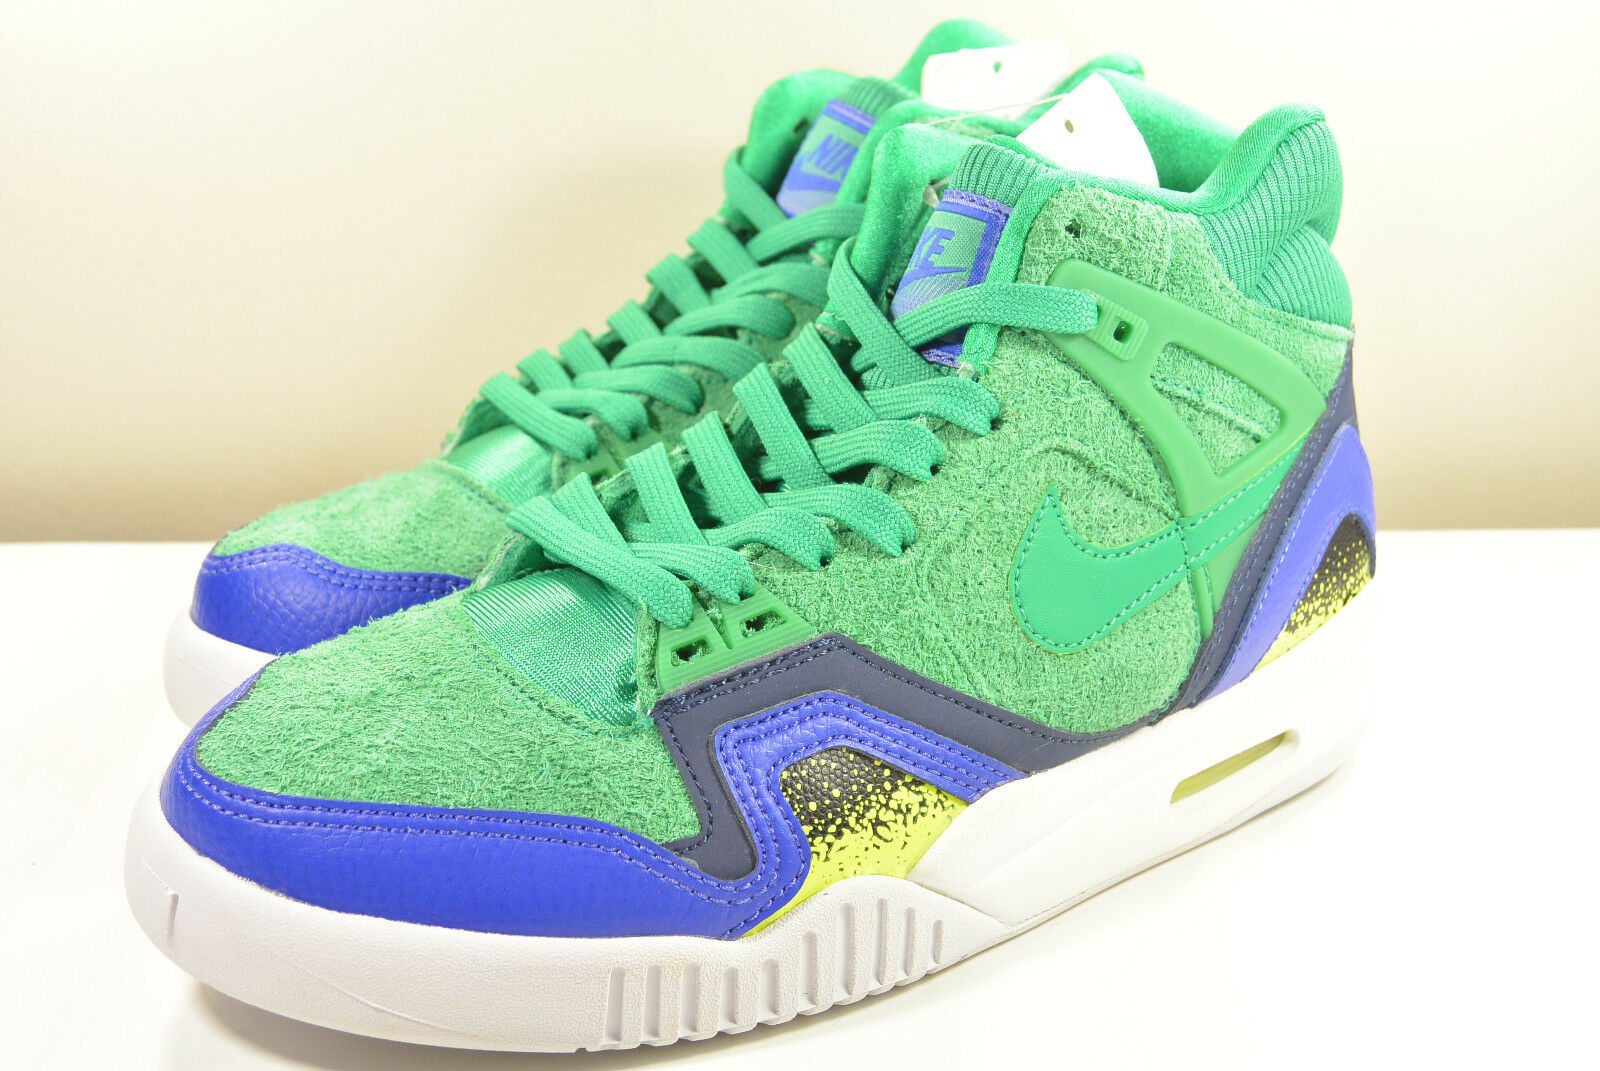 DS TECH NIKE 2016 SAMPLE AIR TECH DS CHALLENGE II STADIUM GREEN 7 AGASSI MAX TRAINER 88ca99